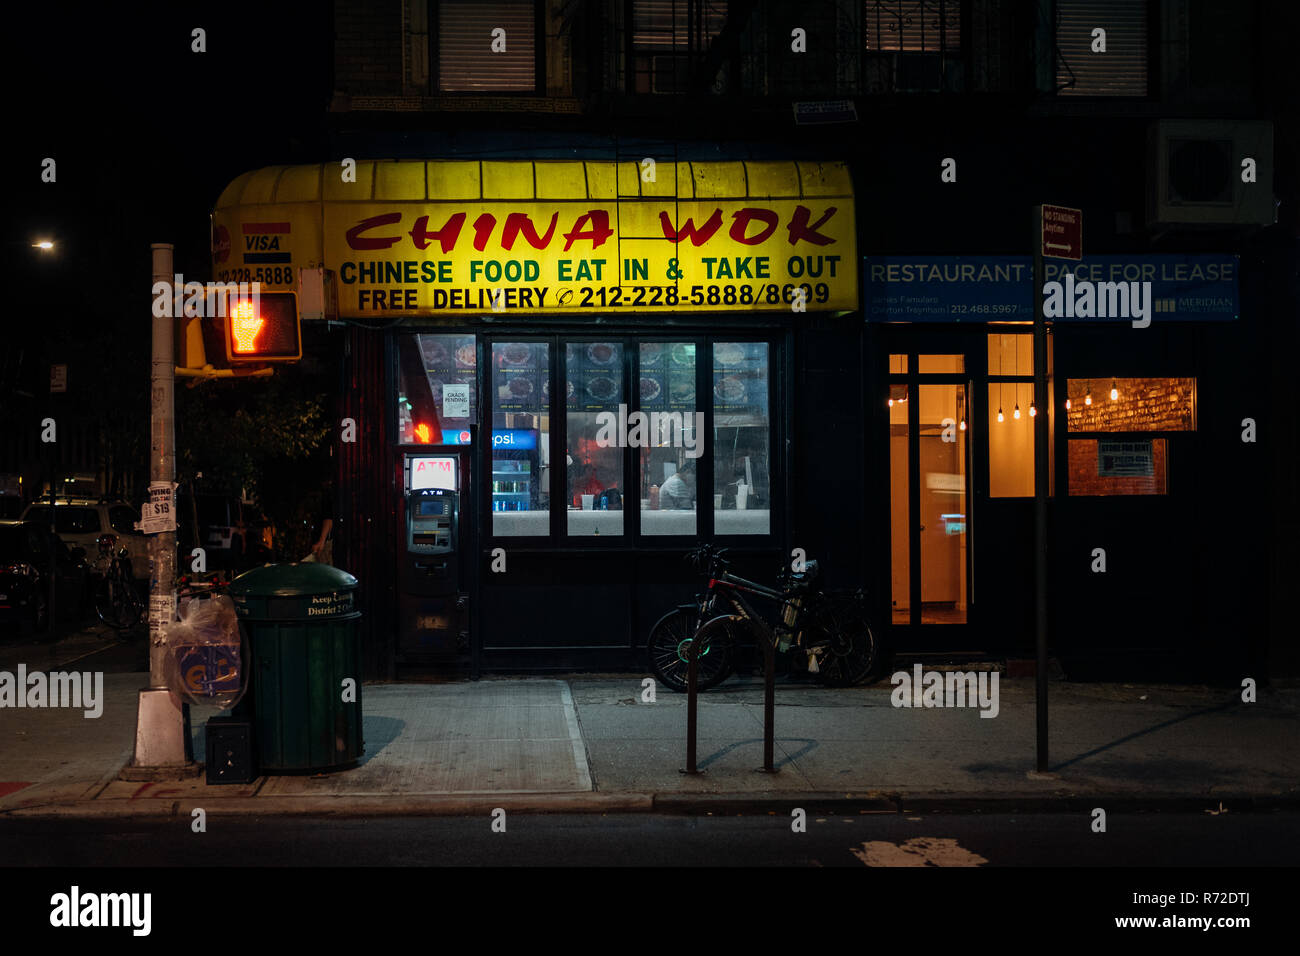 China Wok Restaurant At Night In The East Village